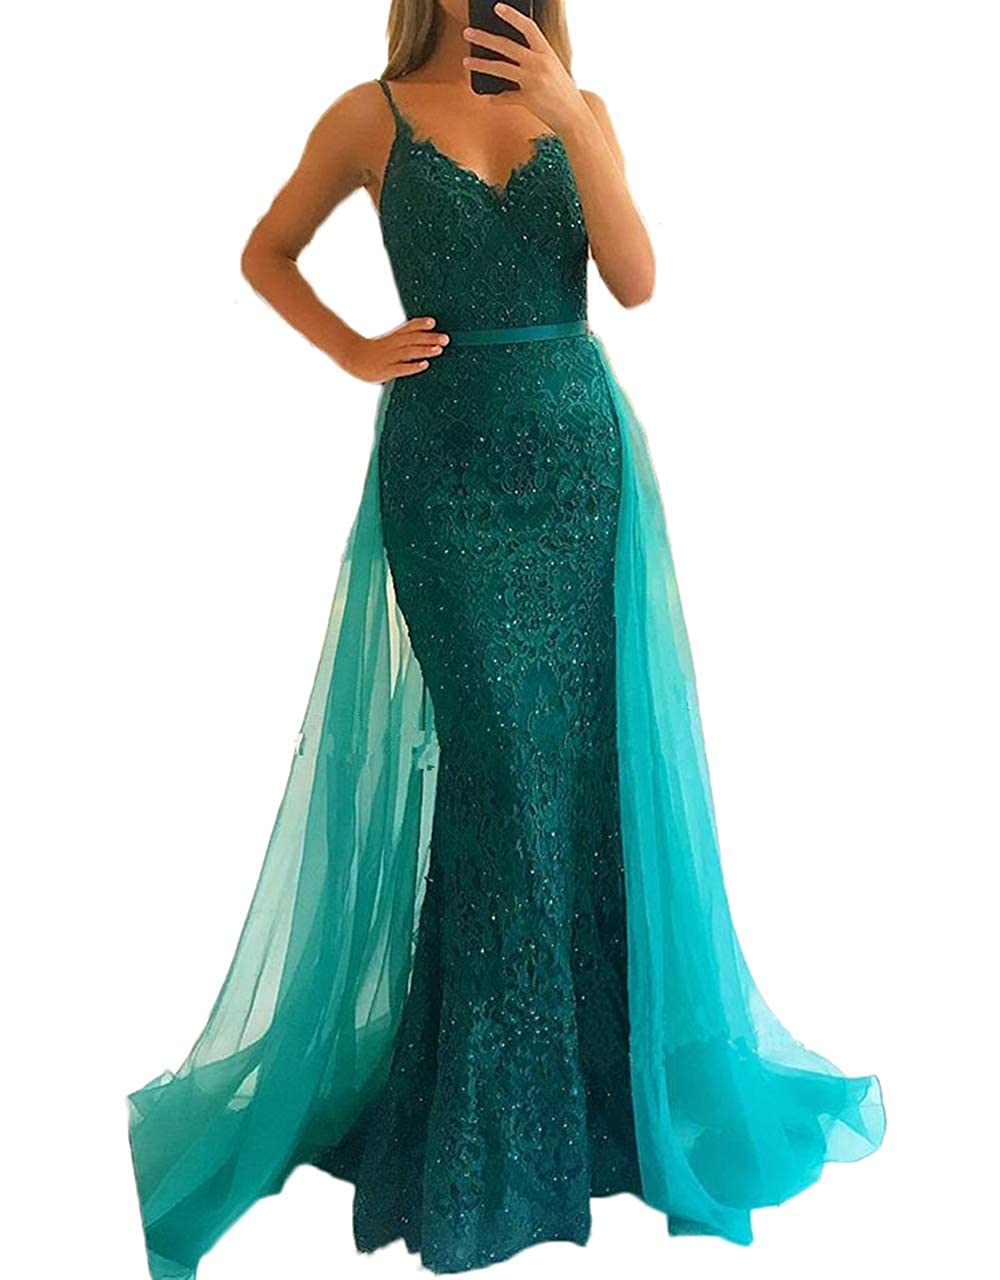 Green alilith.Z Sexy Spaghetti Strap Lace Prom Dresses Mermaid Party Gowns Formal Evening Dresses for Women with Detachable Train